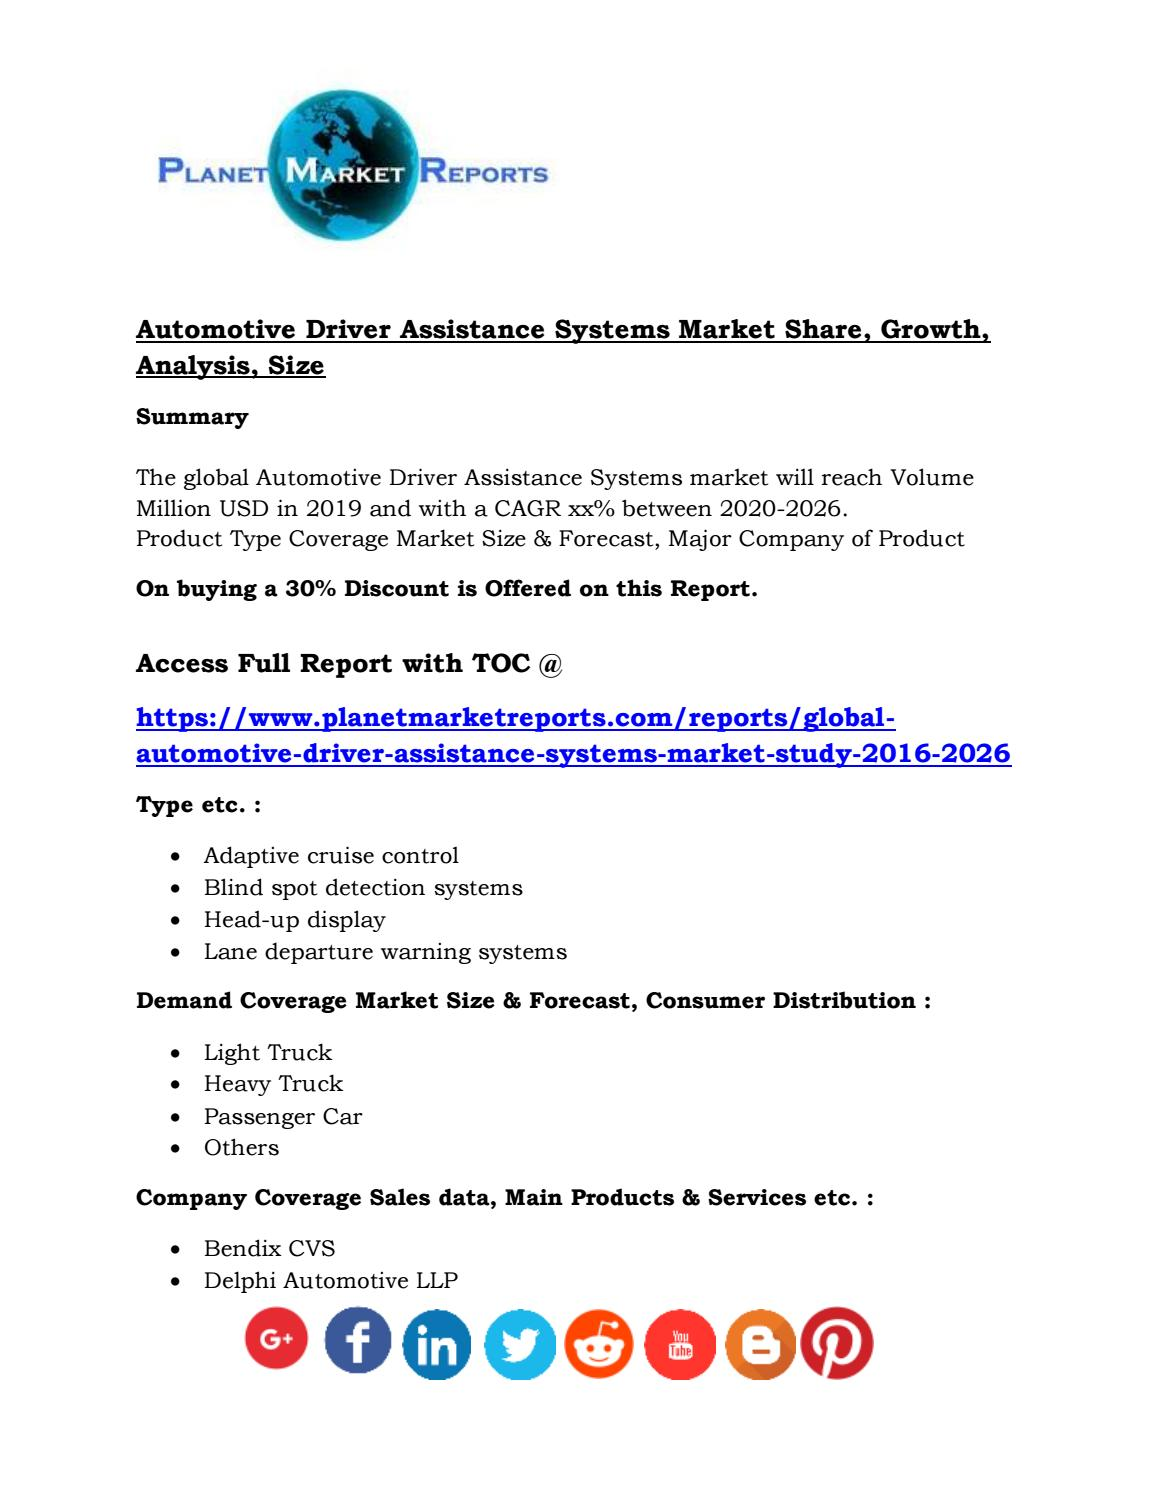 Automotive Driver Assistance Systems Market Share Growth Analysis Size By Planet Market Reports Issuu